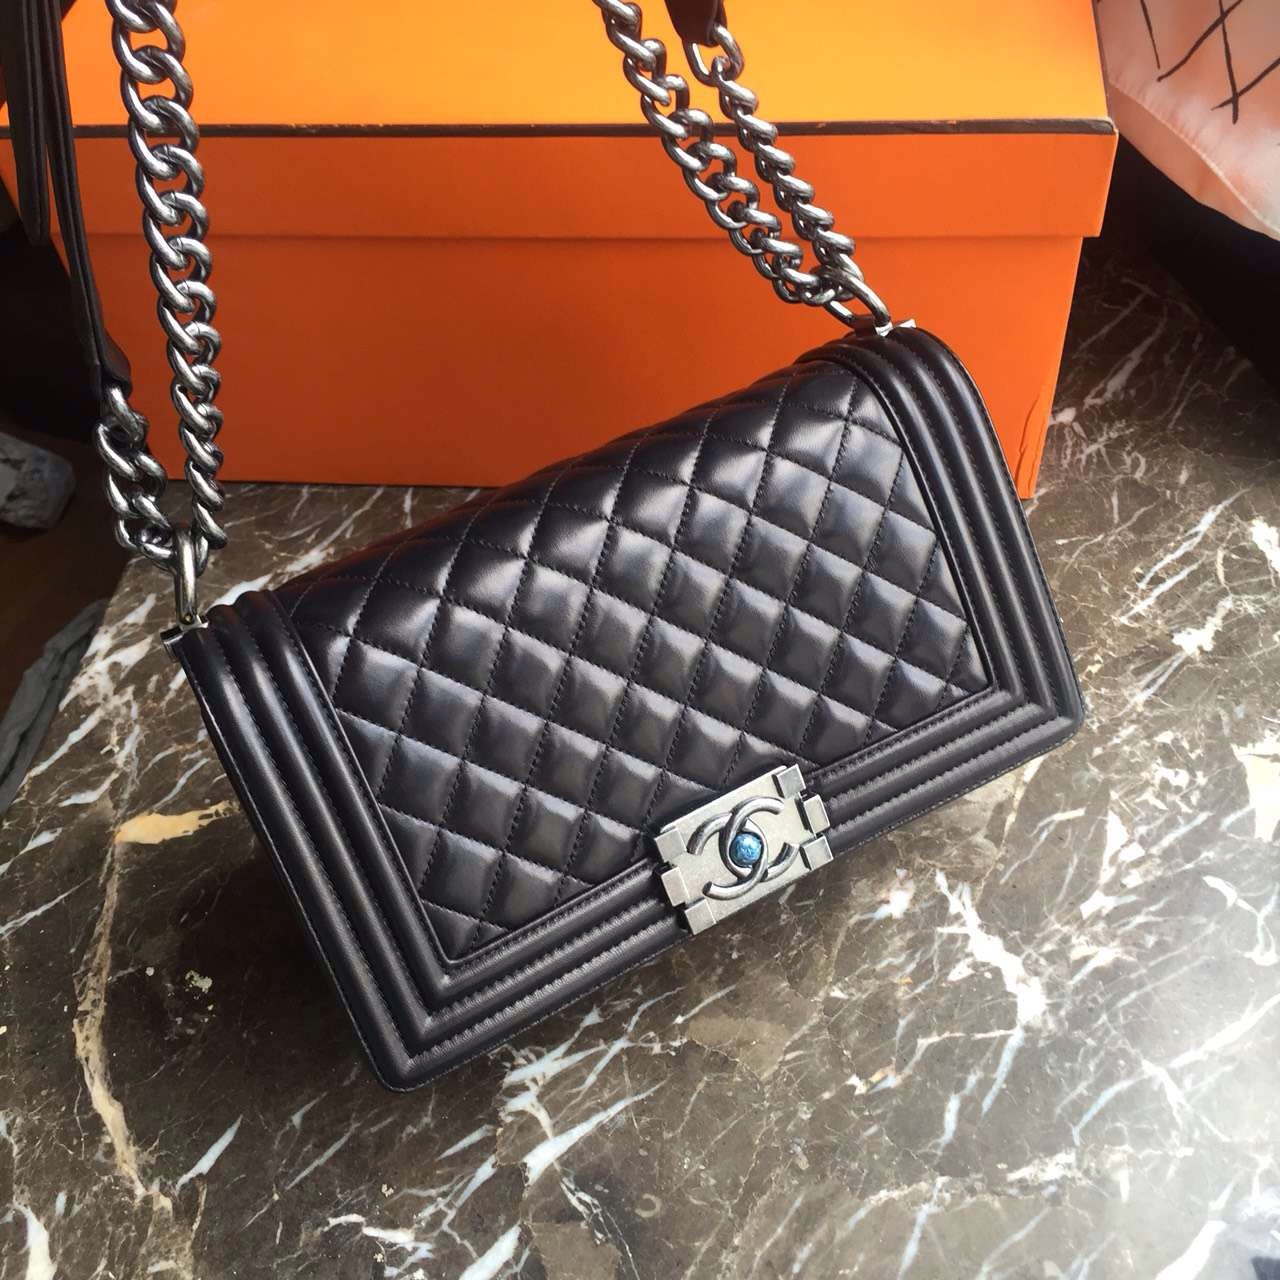 CHANEL Quilted Boy Flap Bag Lambskin with Silver Hardware 6c9e770de8c53